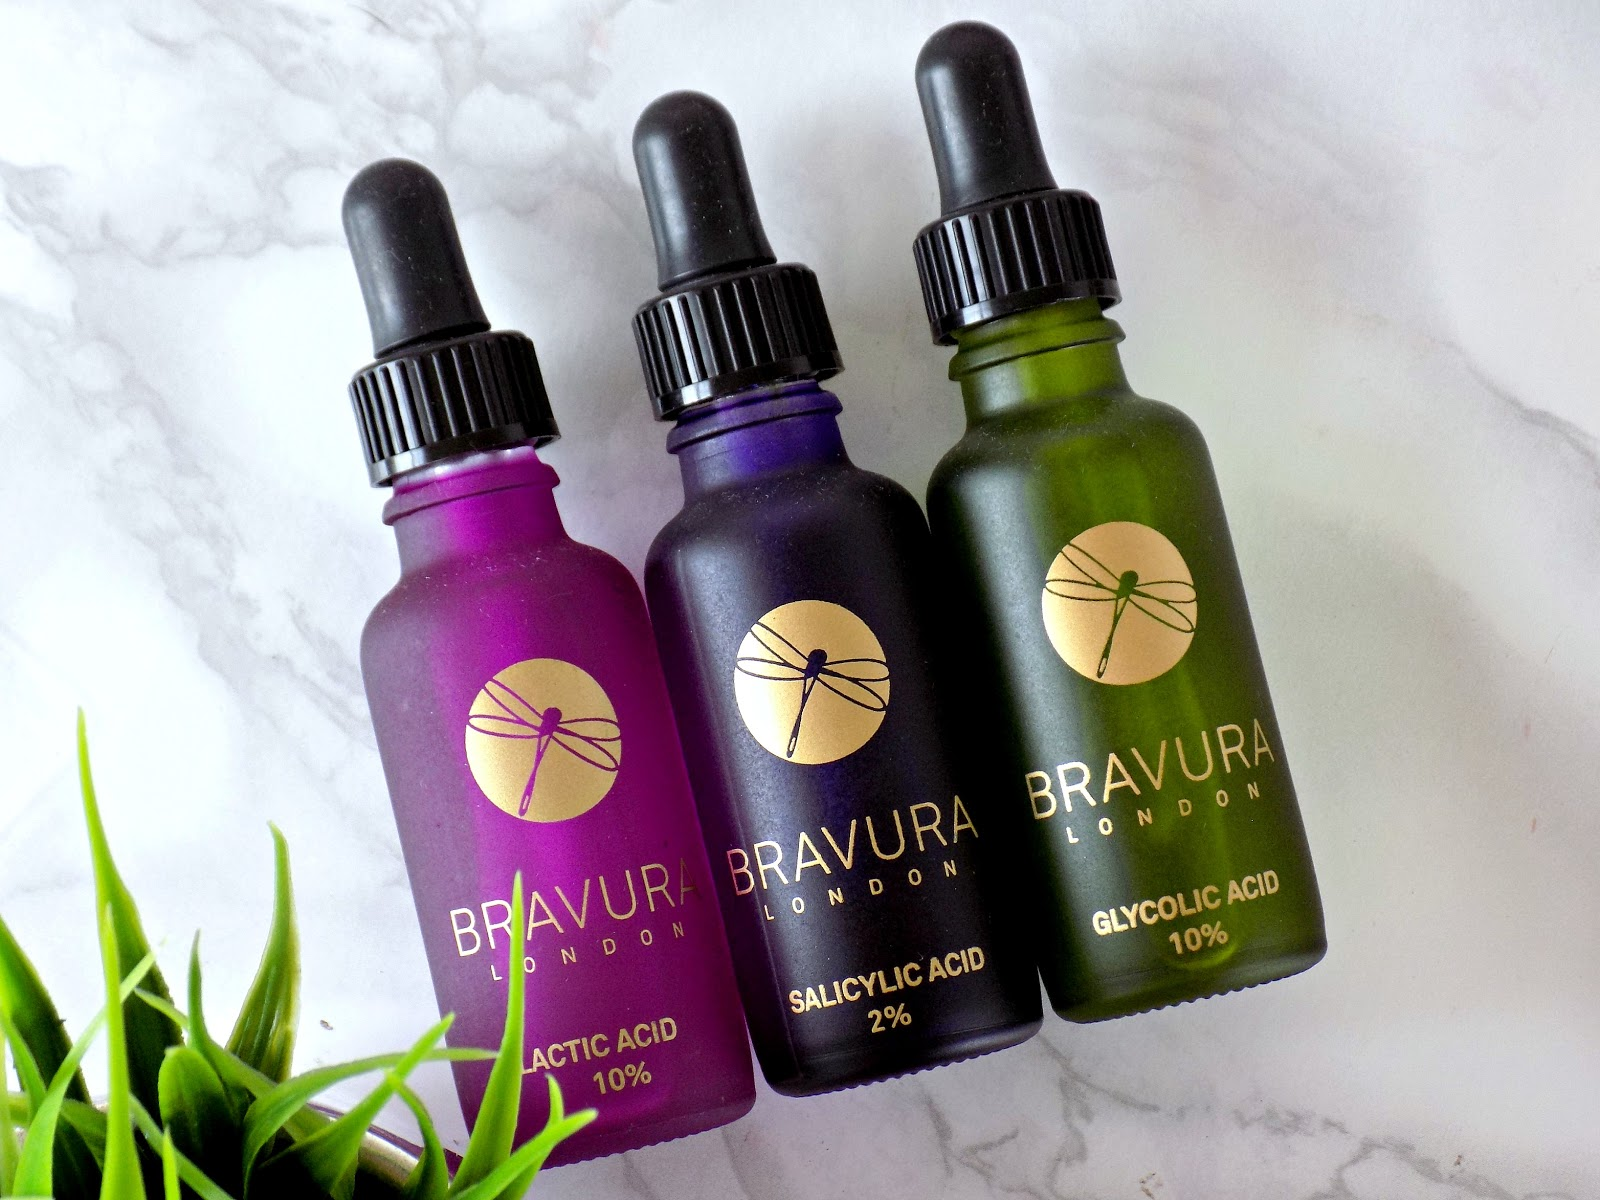 Bravura London chemical exfoliators